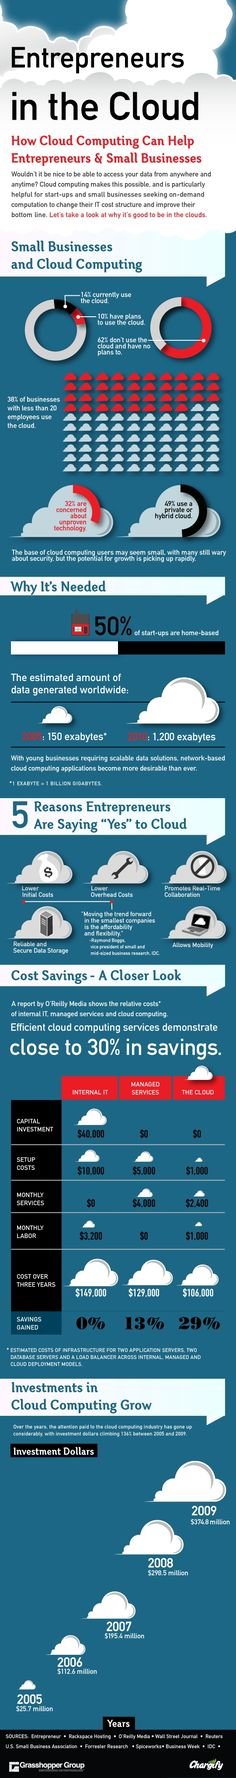 How Cloud Computing can hell Entrepreneurs & Small Businesses